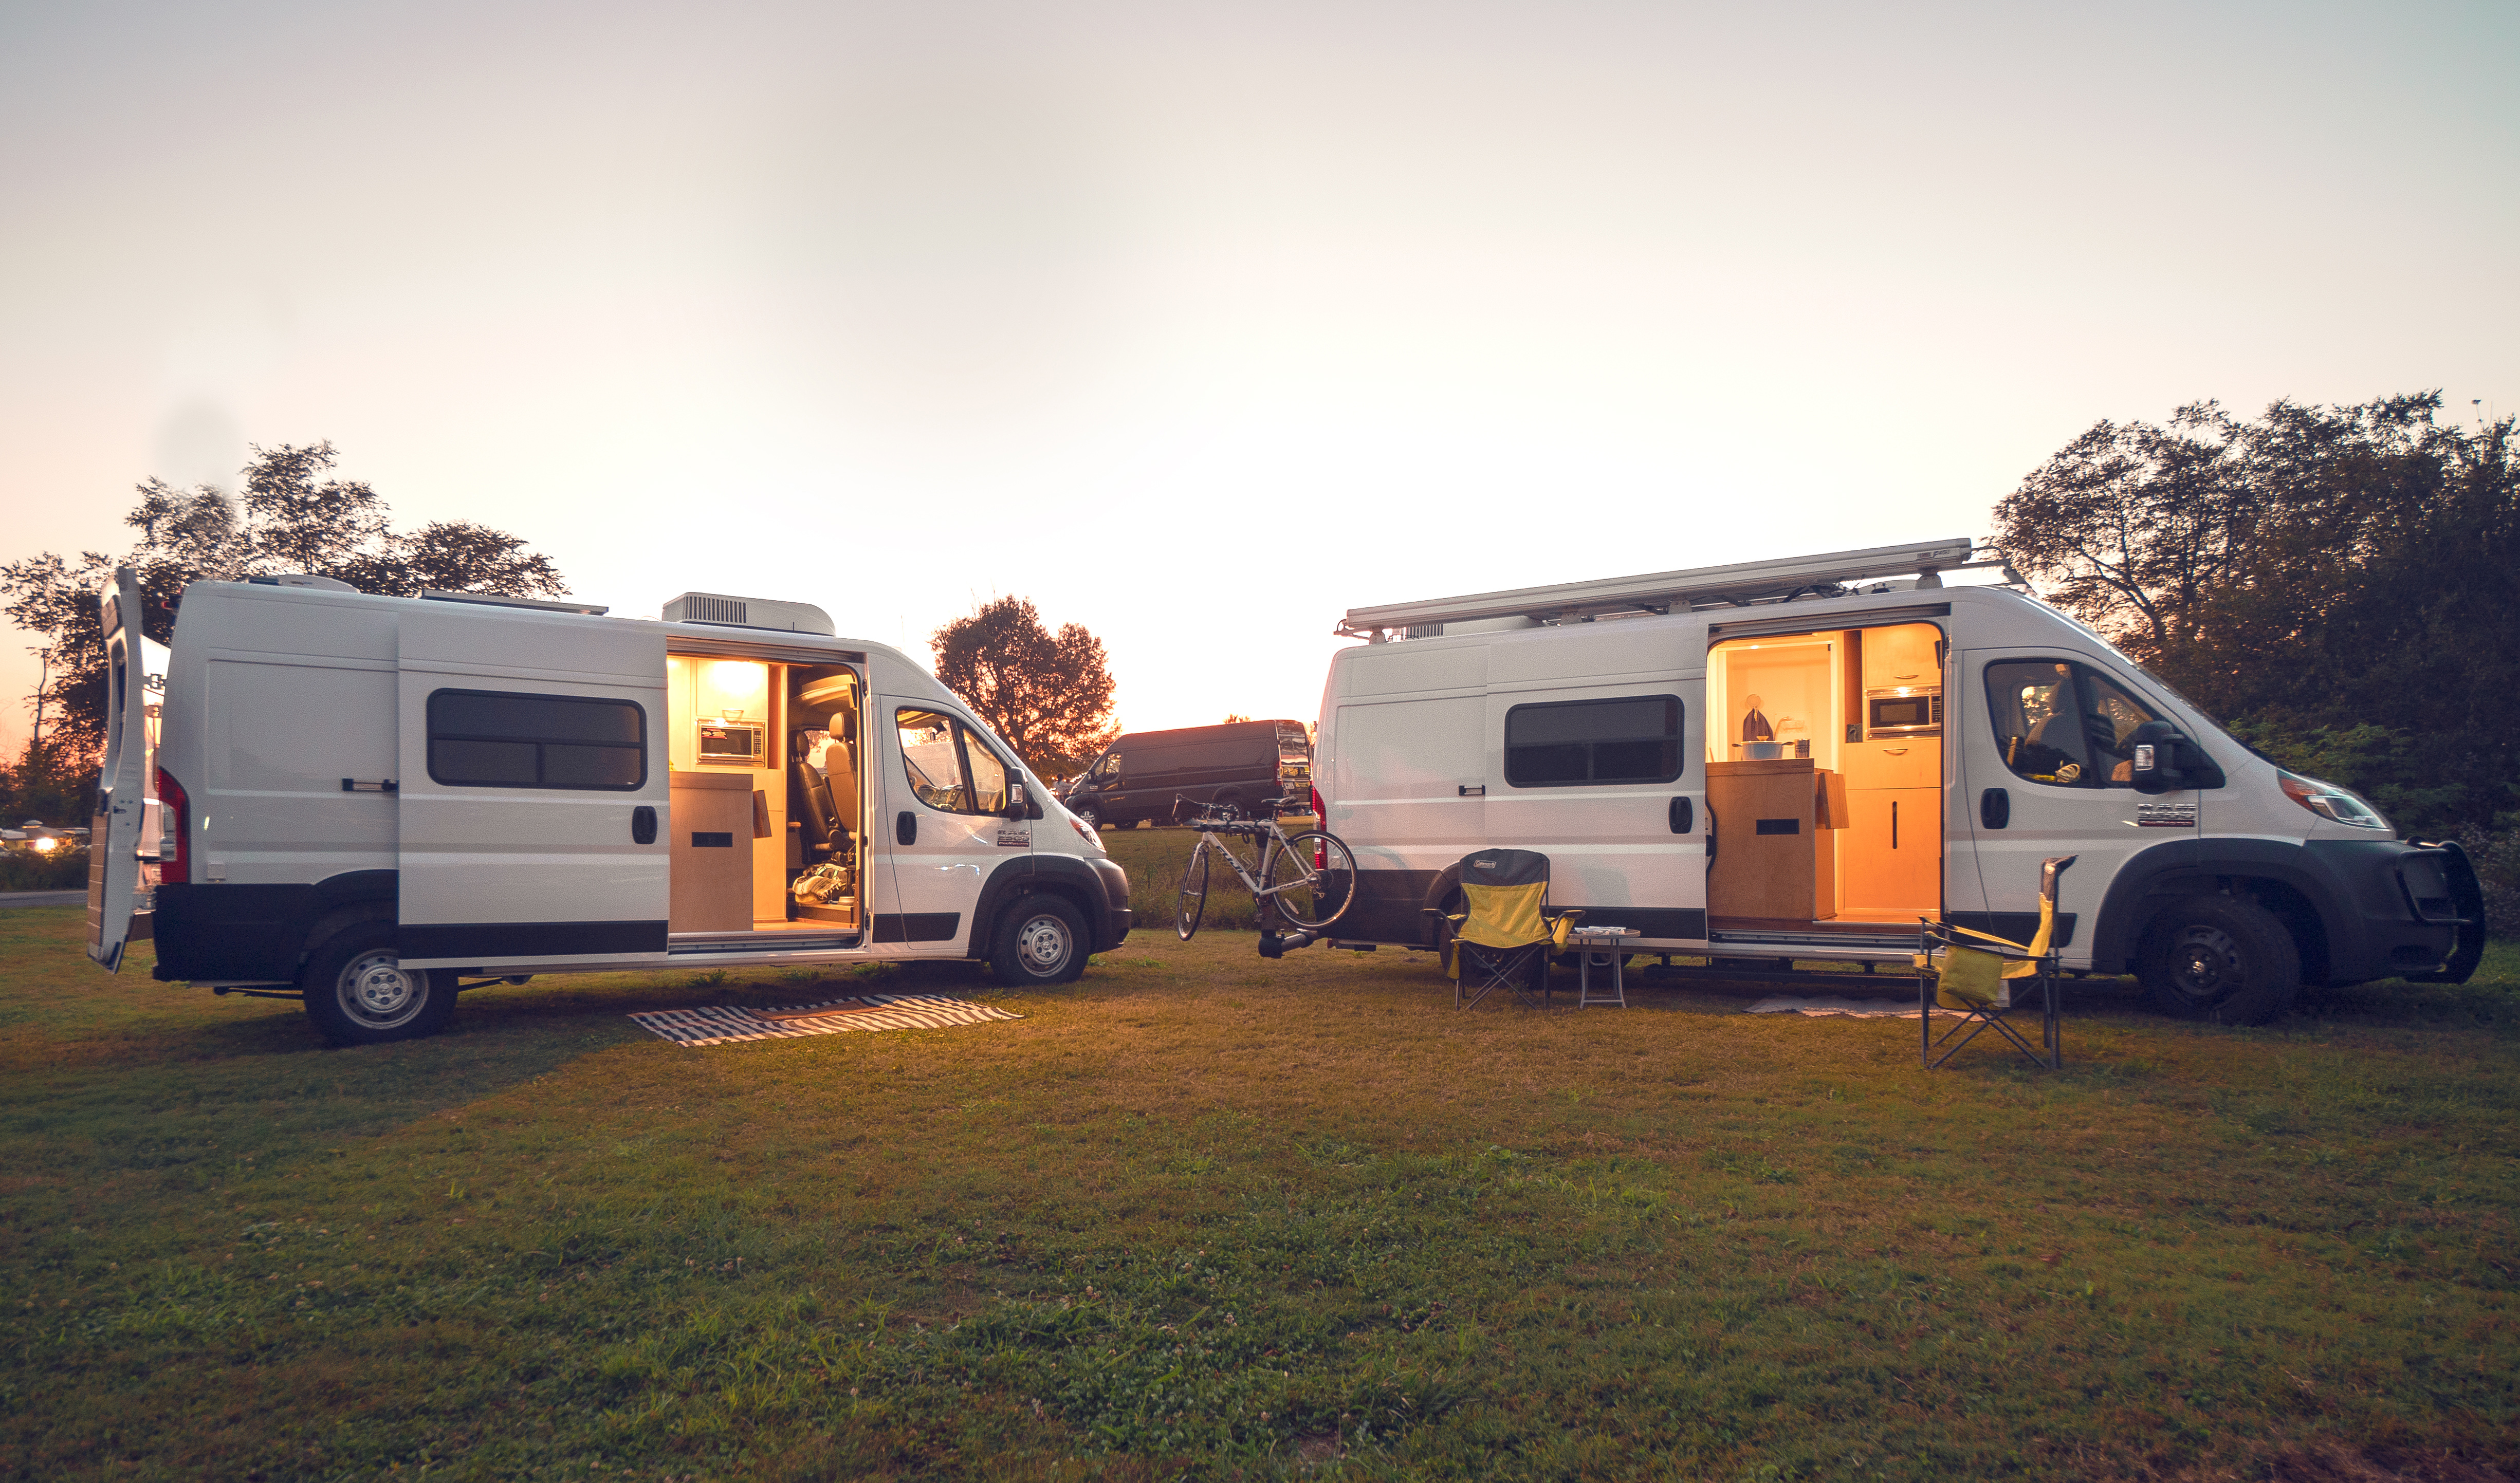 Two white camper vans sit in a grassy area with trees in the background. It's sunset, so the van doors are open and you can see the light from within.